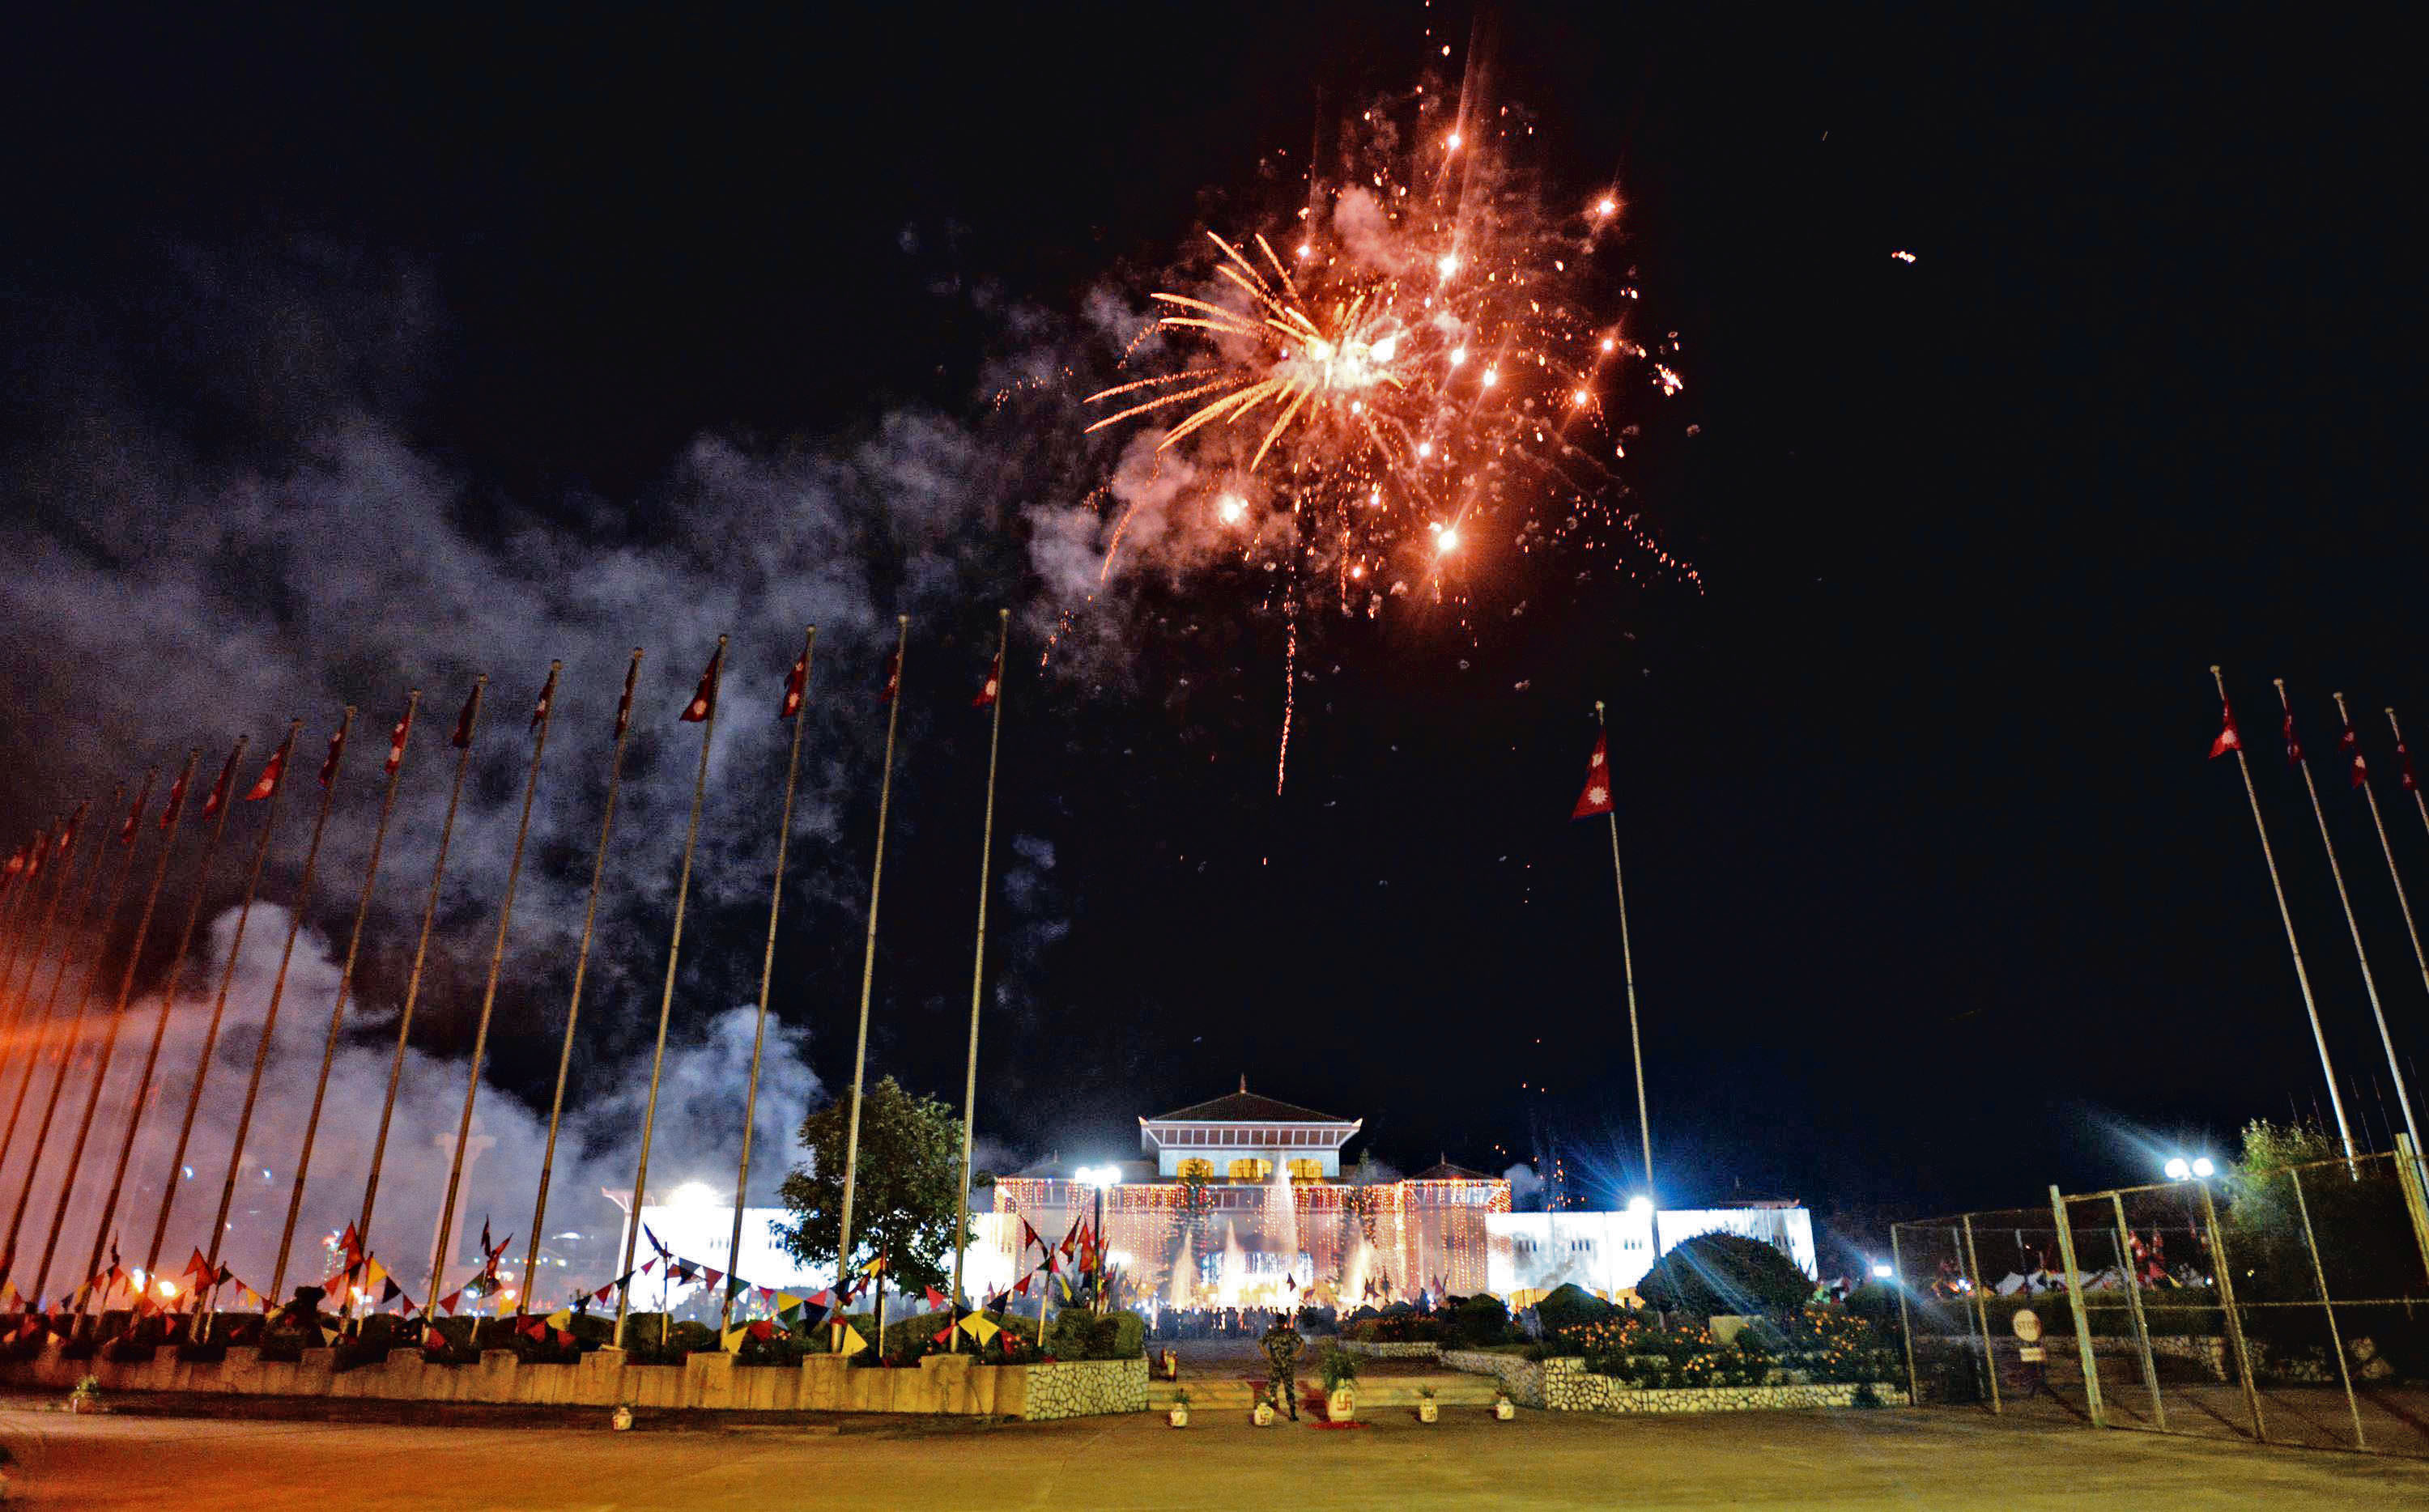 Fireworks are set off to celebrate country's new national constitution near the constituent assembly building in Kathmandu on September 20, 2015. Photo: AFP